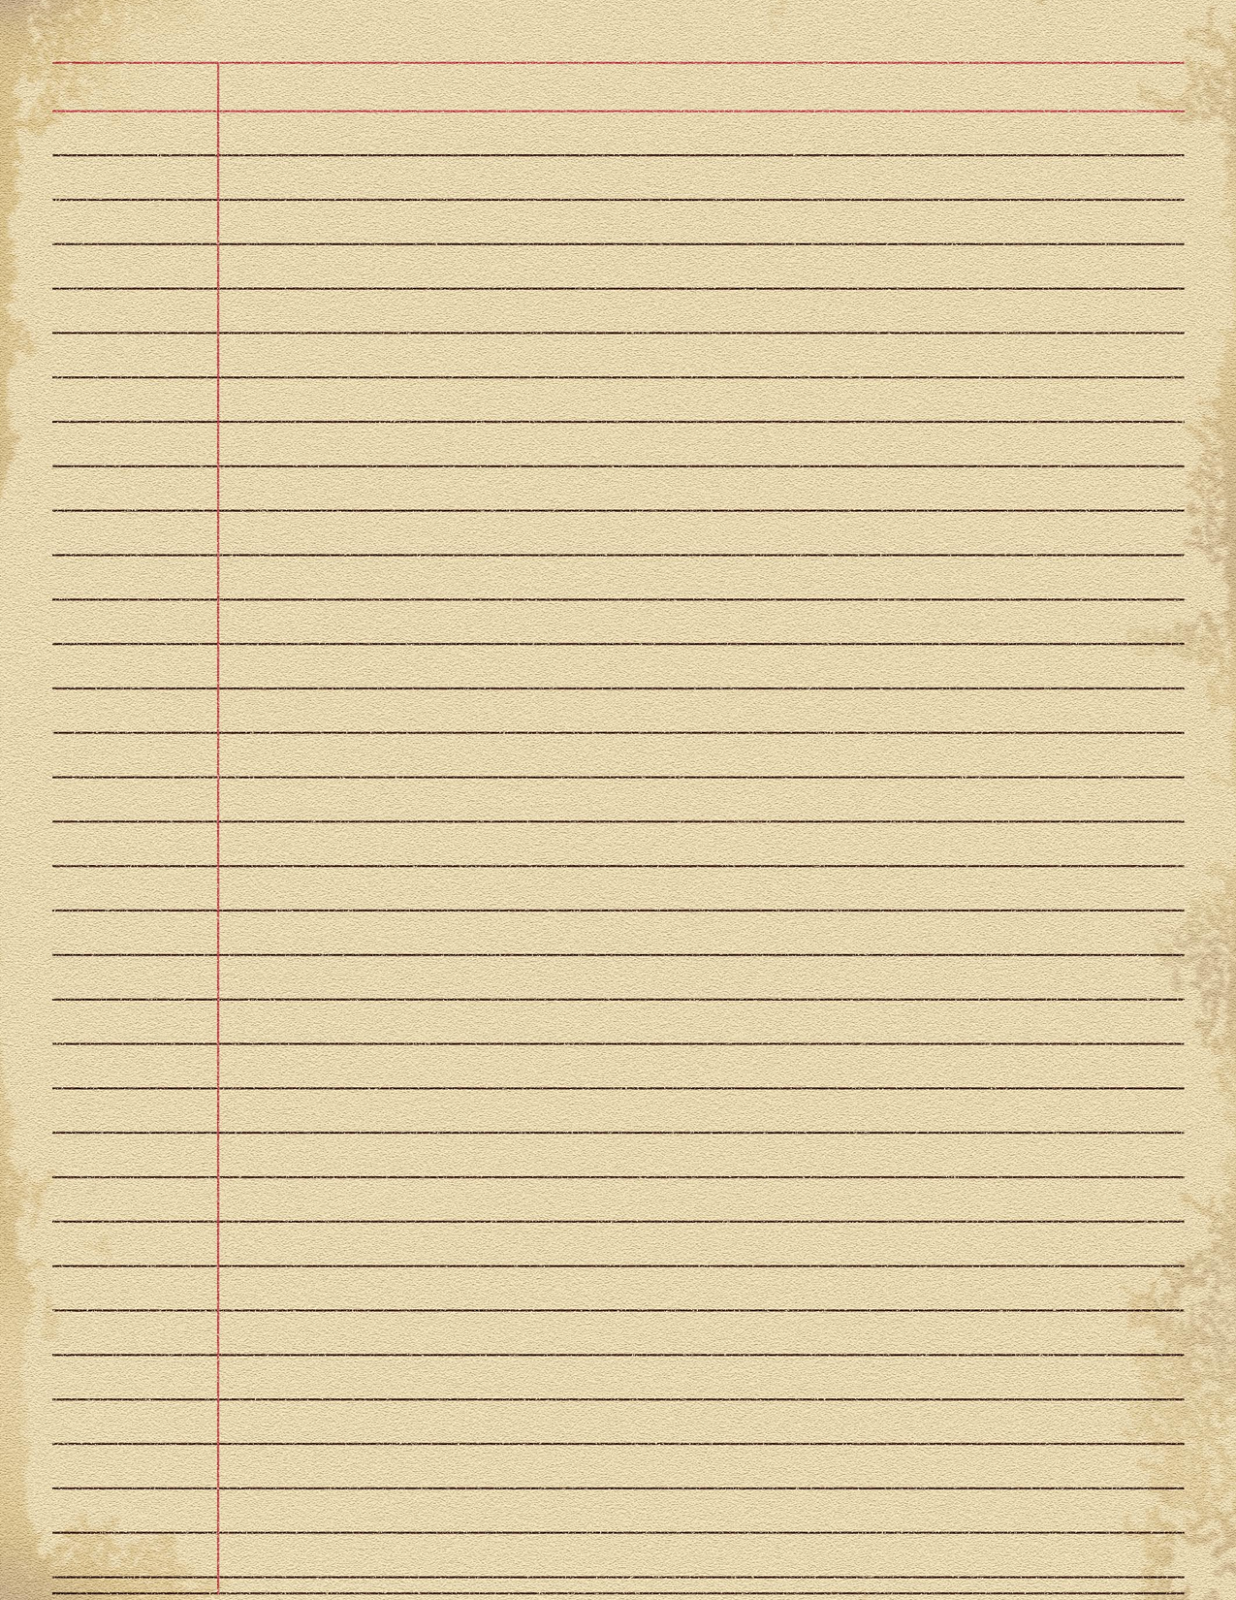 printable notebook paper 5